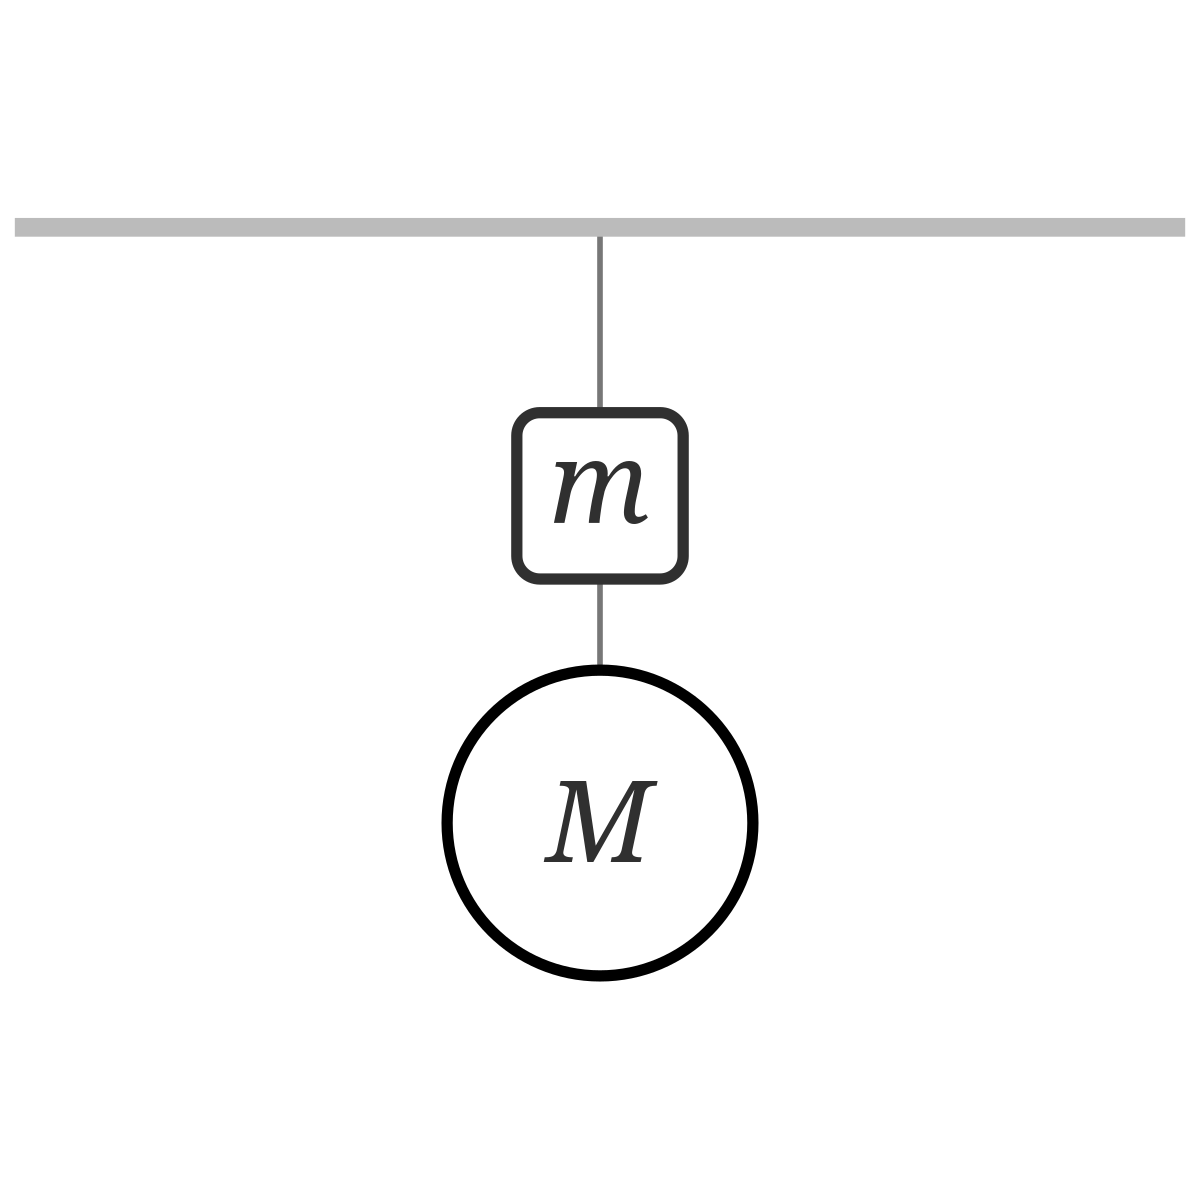 Problem: Two hanging objects connected by a rope | Phyley